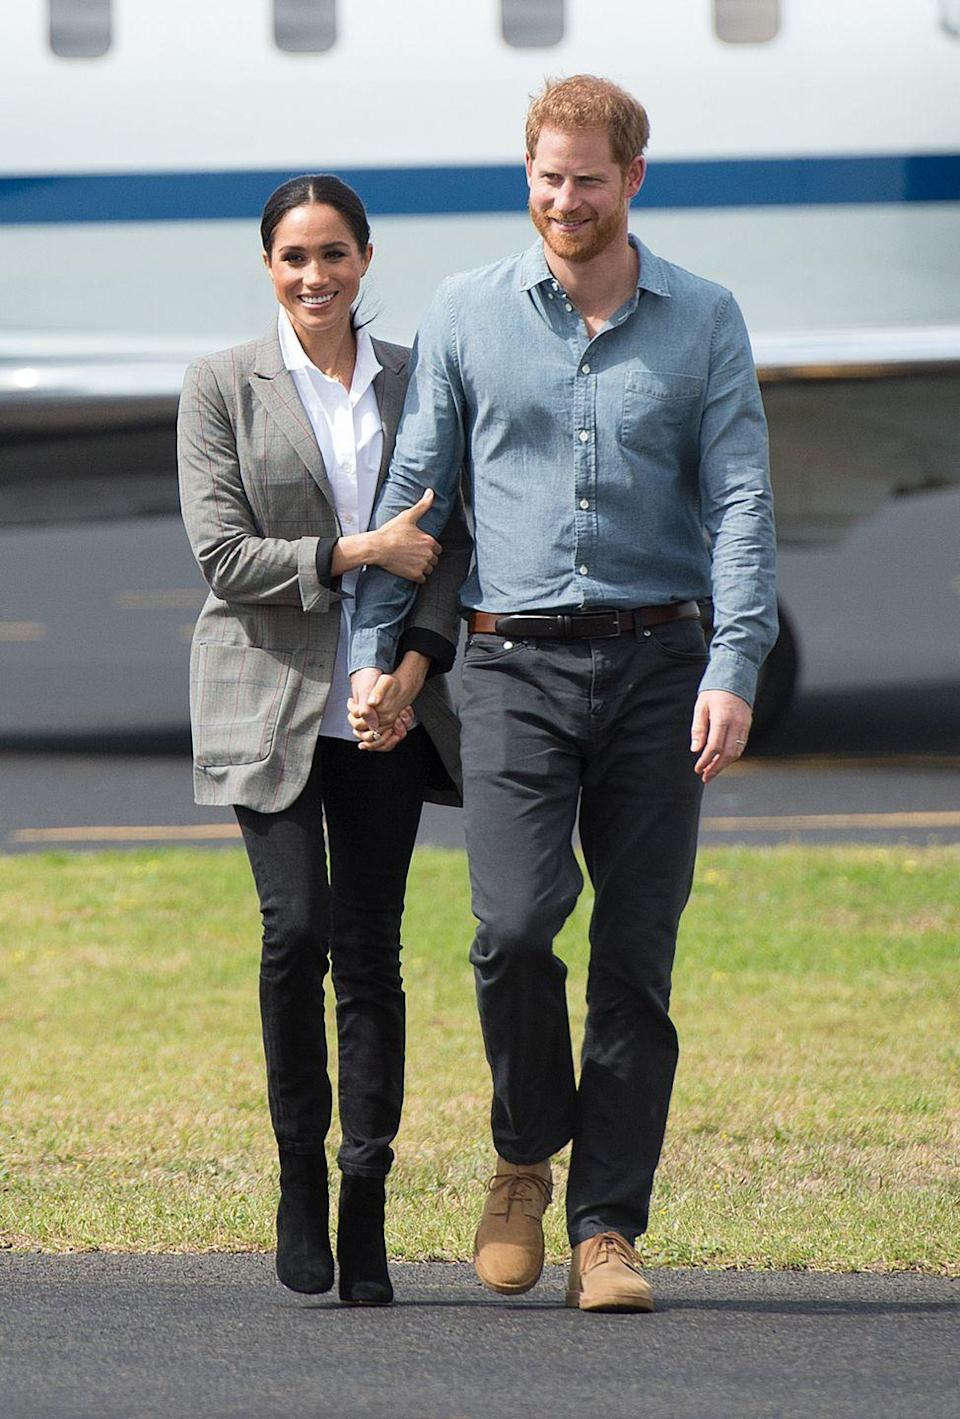 "<p>Harry and Meghan visited <a href=""https://www.townandcountrymag.com/society/tradition/g23839991/prince-harry-meghan-markle-royal-tour-australia-day-2-photos/"" rel=""nofollow noopener"" target=""_blank"" data-ylk=""slk:Dubbo on day two"" class=""link rapid-noclick-resp"">Dubbo on day two</a> of their royal tour. For this visit, <a href=""https://www.townandcountrymag.com/style/fashion-trends/a23842614/meghan-markle-serena-williams-blazer-royal-tour-australia-day-2/"" rel=""nofollow noopener"" target=""_blank"" data-ylk=""slk:Meghan wore a"" class=""link rapid-noclick-resp"">Meghan wore a</a> plaid blazer from <a href=""https://www.serenawilliams.com/collections/outerwear/products/boss-oversized-blazer"" rel=""nofollow noopener"" target=""_blank"" data-ylk=""slk:her close friend Serena Williams's line"" class=""link rapid-noclick-resp"">her close friend Serena Williams's line</a> over a button-down shirt by Maison Kitsune, black pants from Australian <a href=""https://outlanddenim.com/products/harriet-in-black"" rel=""nofollow noopener"" target=""_blank"" data-ylk=""slk:brand Outland"" class=""link rapid-noclick-resp"">brand Outland</a>, black boots from J.Crew. The Duchess also wore a pair of diamond earring by <a href=""https://adinareyter.com/collections/earrings/products/3-diamond-amigos-curve-posts"" rel=""nofollow noopener"" target=""_blank"" data-ylk=""slk:Adina Reyter"" class=""link rapid-noclick-resp"">Adina Reyter</a>.</p><p><a class=""link rapid-noclick-resp"" href=""https://go.redirectingat.com?id=74968X1596630&url=https%3A%2F%2Fwww.jcrew.com%2Fp%2Fwomens_category%2Fshoes%2Fboots%2Fsadie-ankle-boots%2FK0039%3Fcolor_name%3Dmelted-caramel&sref=https%3A%2F%2Fwww.townandcountrymag.com%2Fstyle%2Ffashion-trends%2Fg3272%2Fmeghan-markle-preppy-style%2F"" rel=""nofollow noopener"" target=""_blank"" data-ylk=""slk:SHOP NOW"">SHOP NOW </a><em>Sadie Ankle Boots by J.Crew, $178</em></p>"